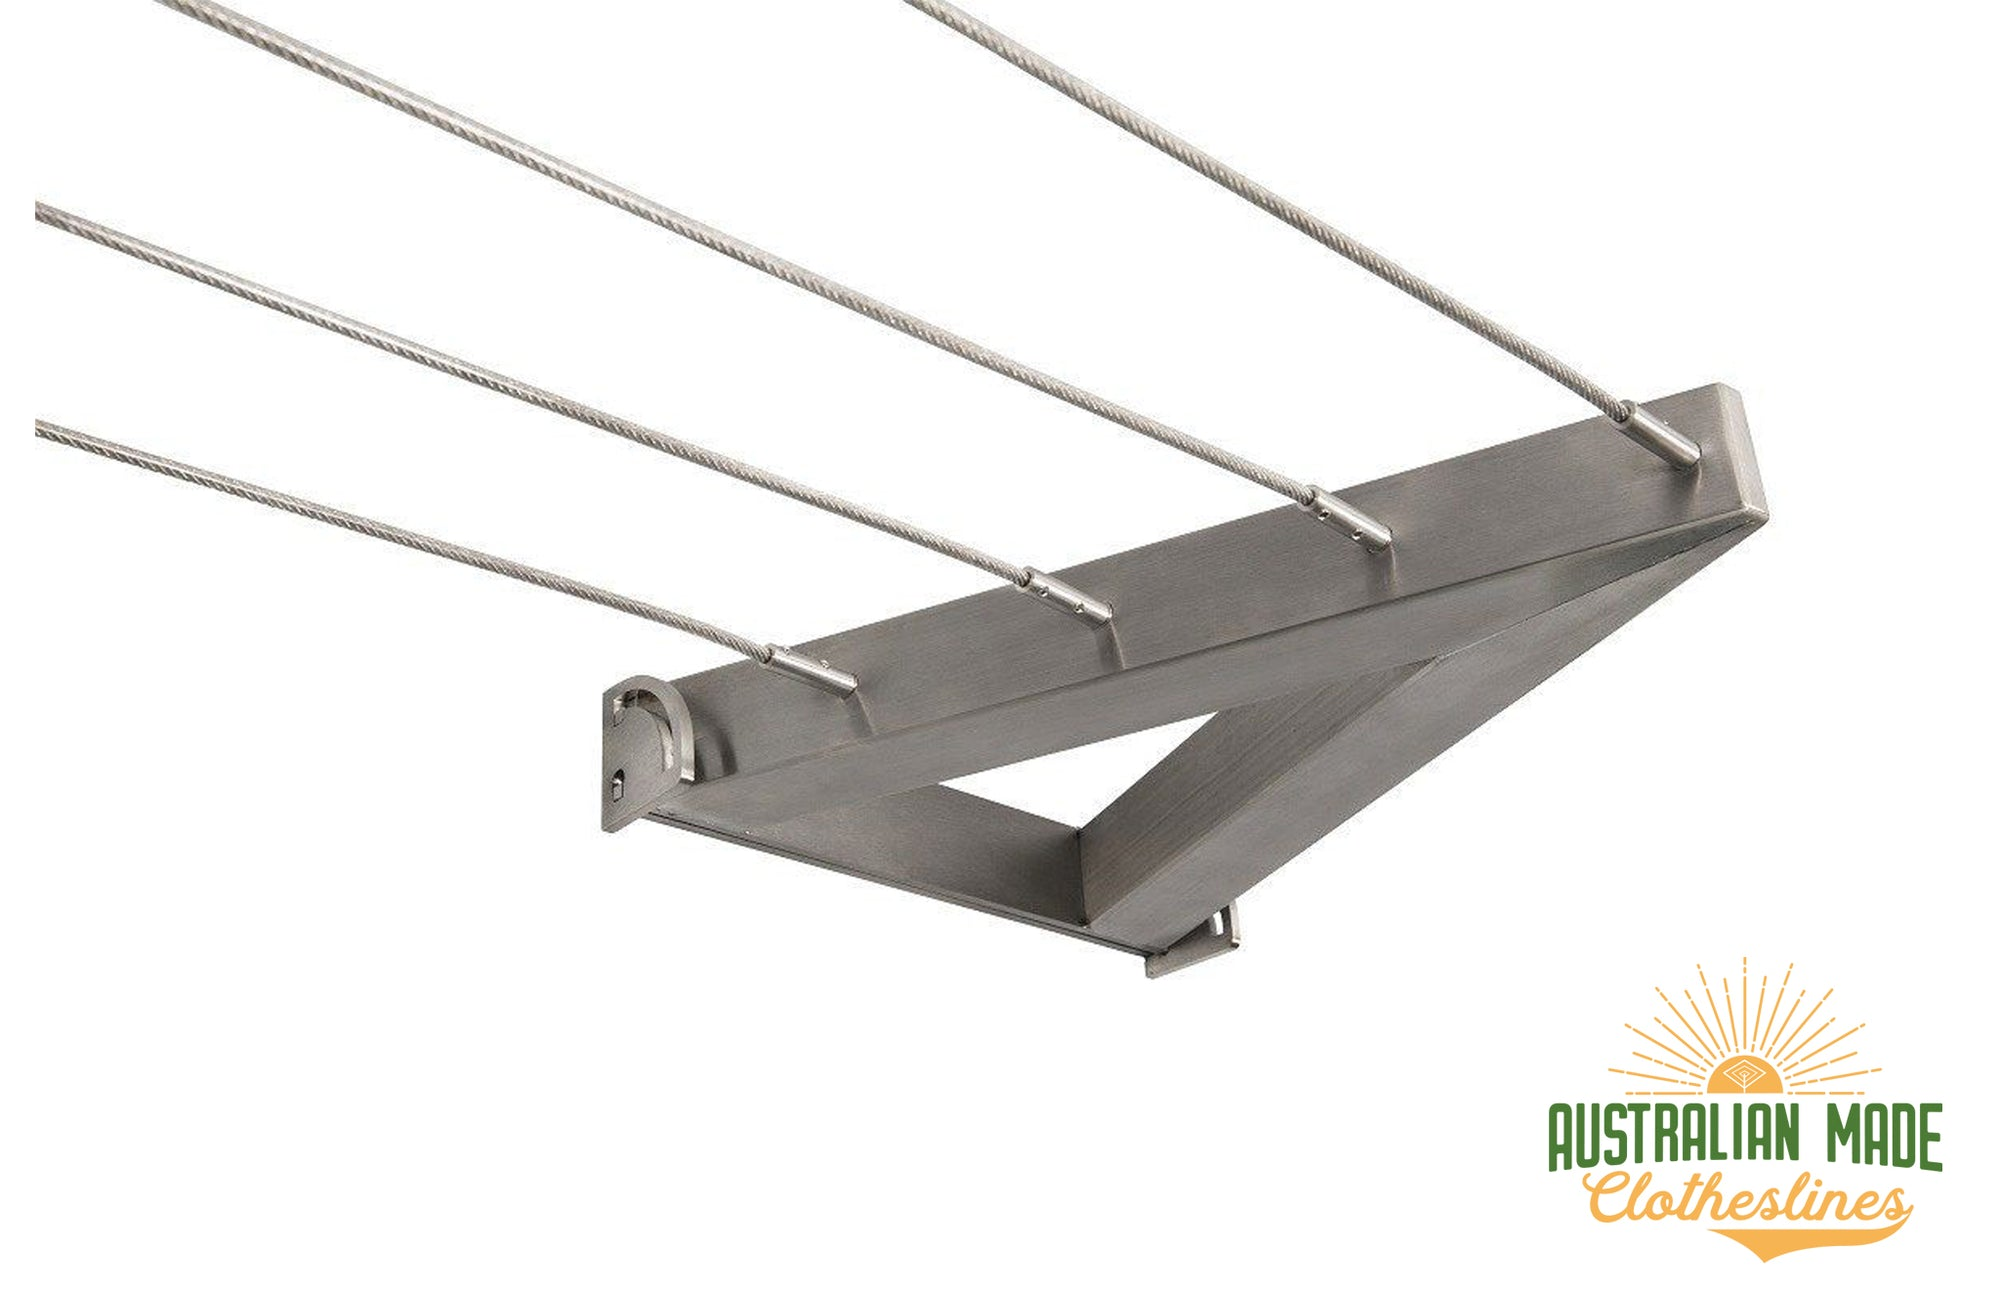 Evolution 316 Stainless Steel Clothesline - 4 Line Stainless Steel - Australian Made Clotheslines